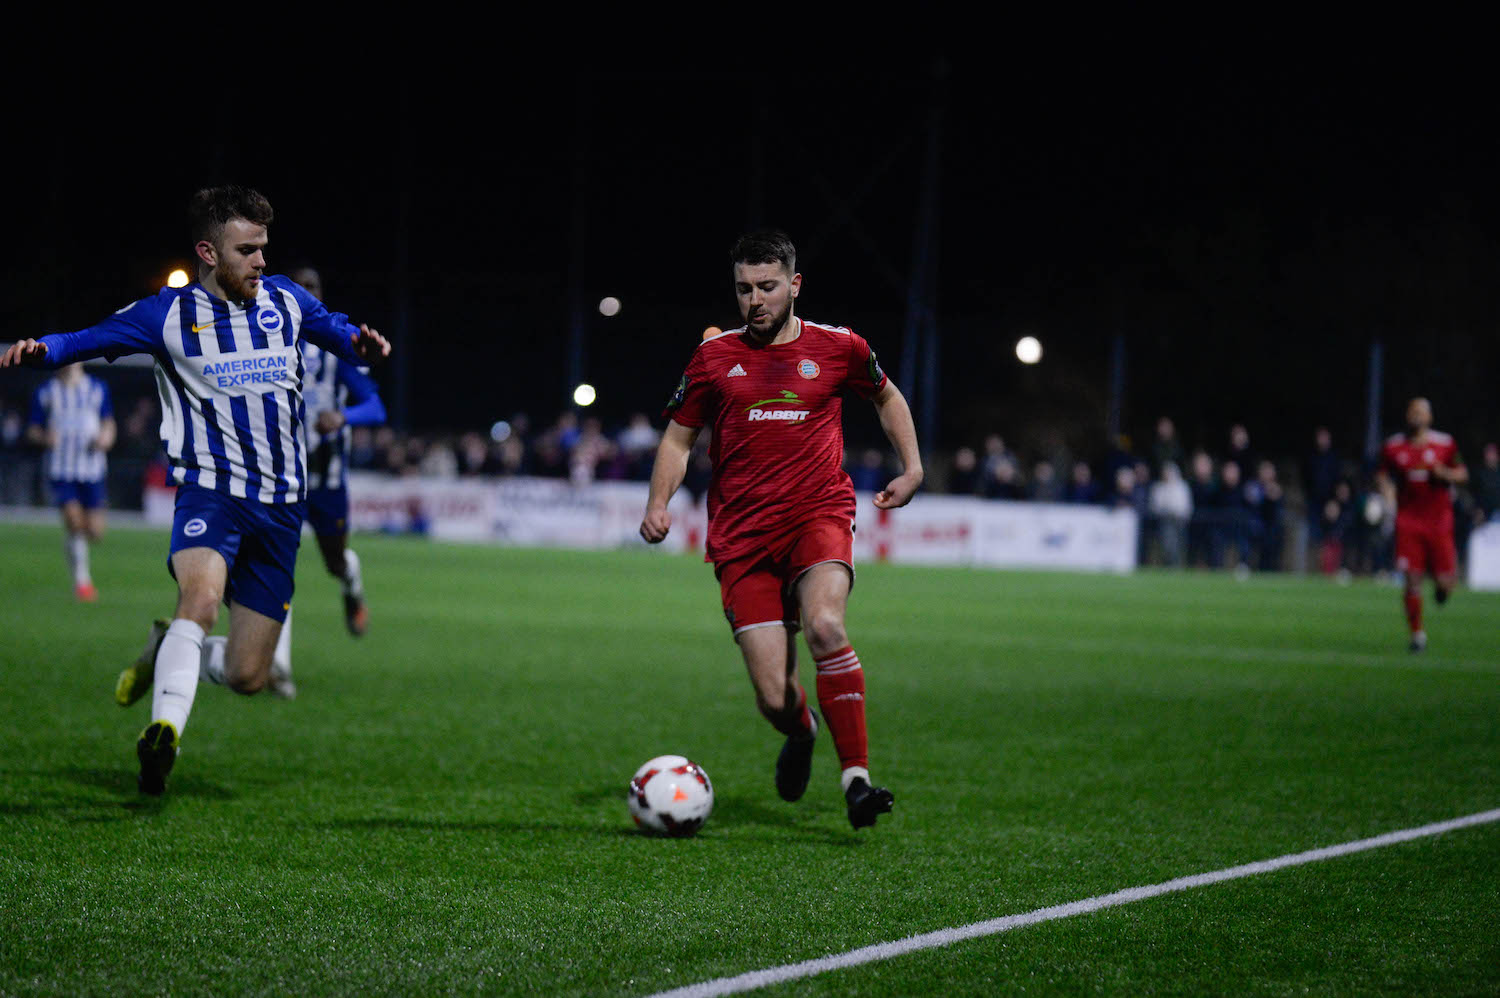 Read the full article - Tanners edge Reds in seven goal thriller